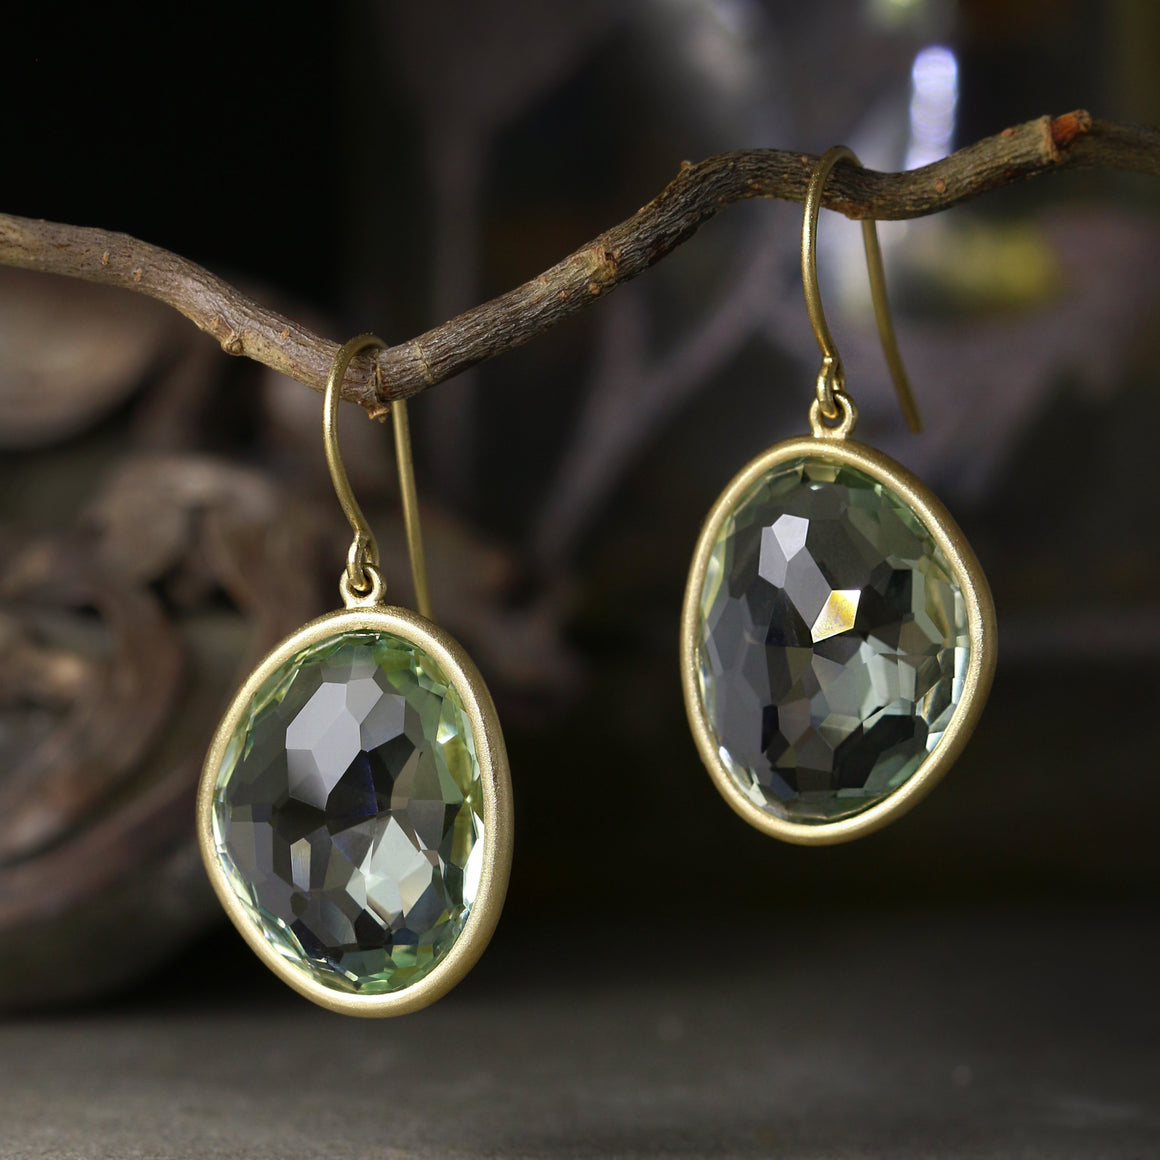 Piedras Earrings with Prasiolite - Small